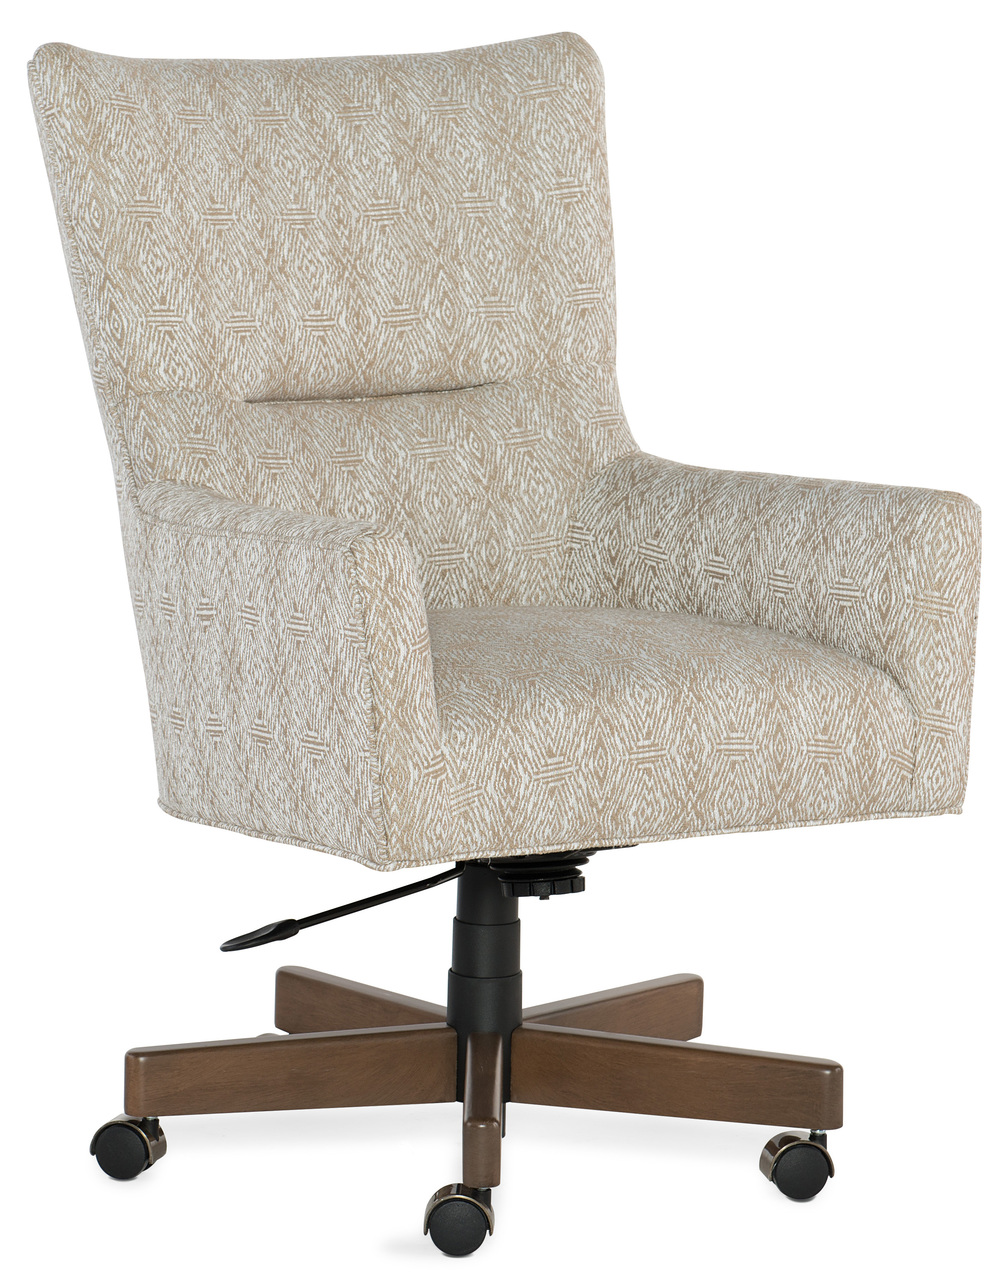 Sam Moore - Moka Desk Chair